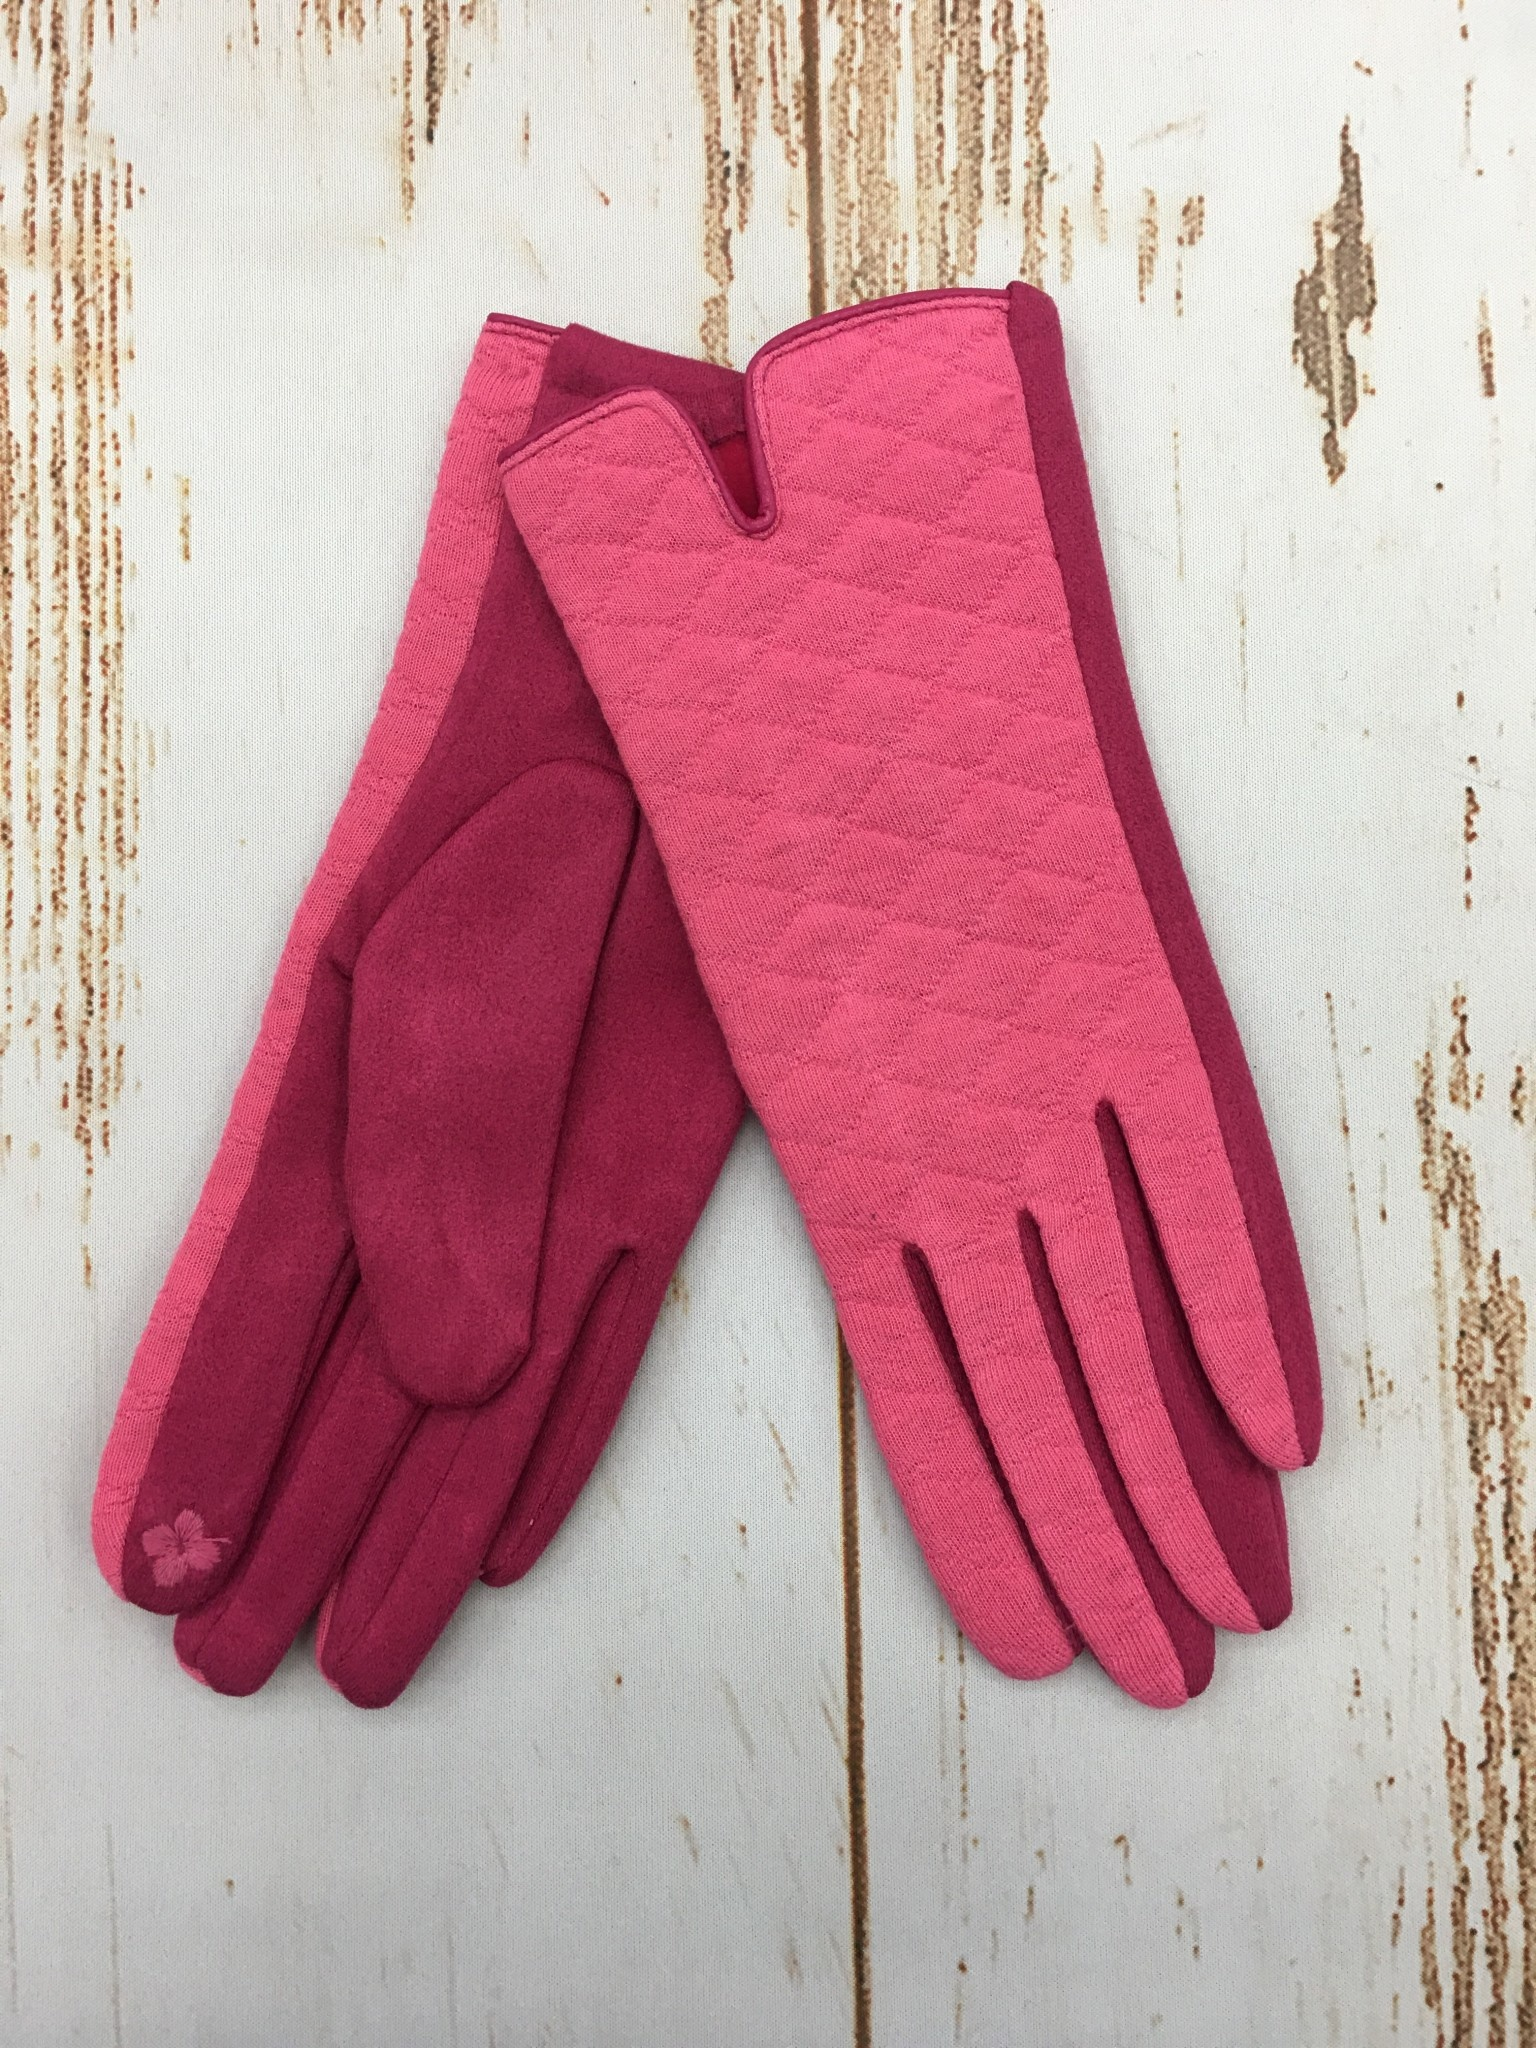 Top It Off Pink Gloves